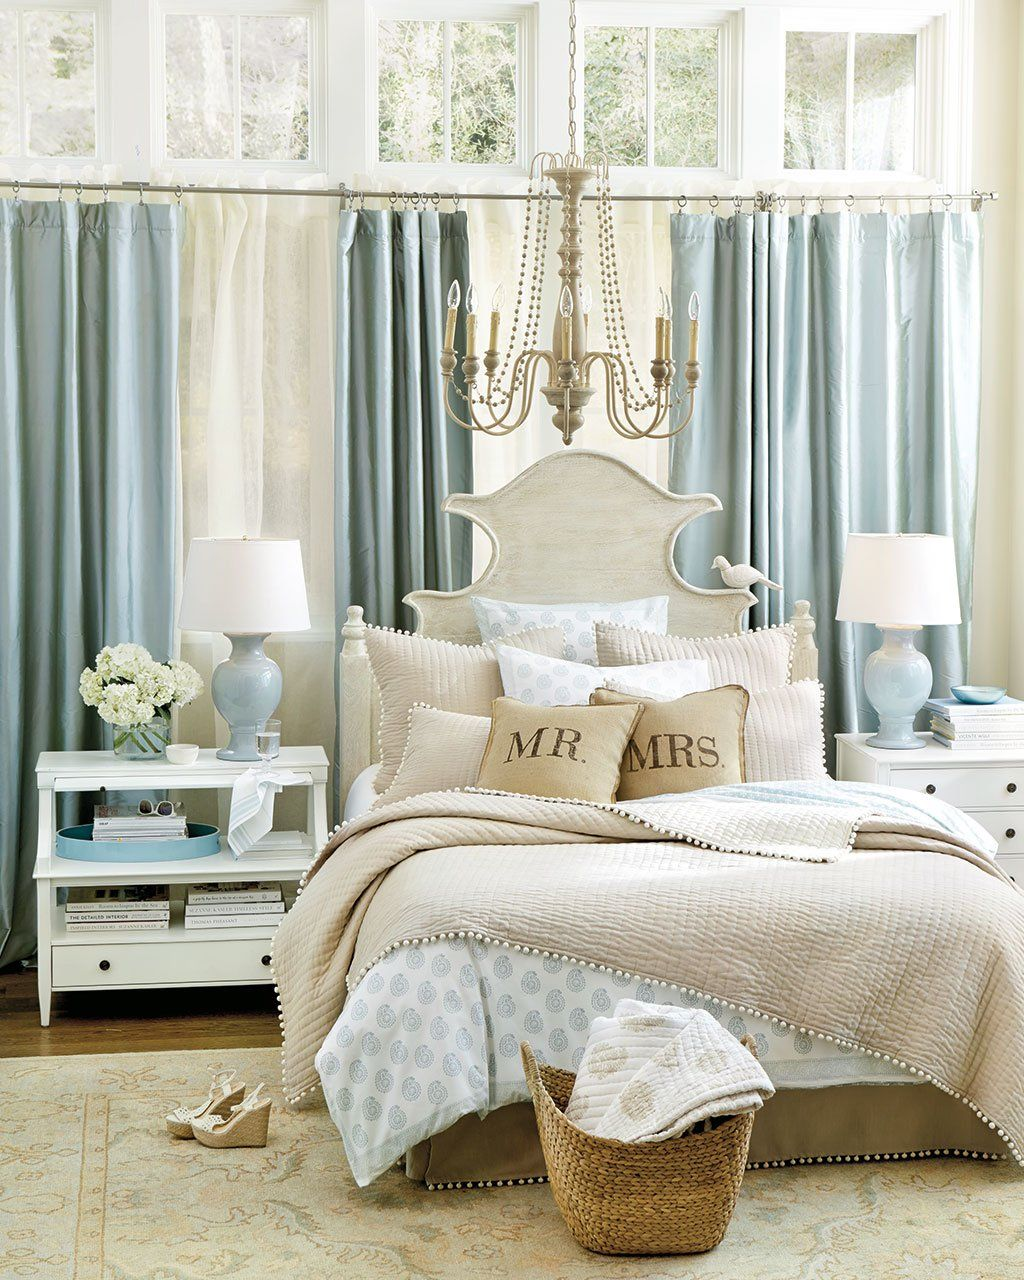 10 Ways To Place Your Bed In Front Of A Window